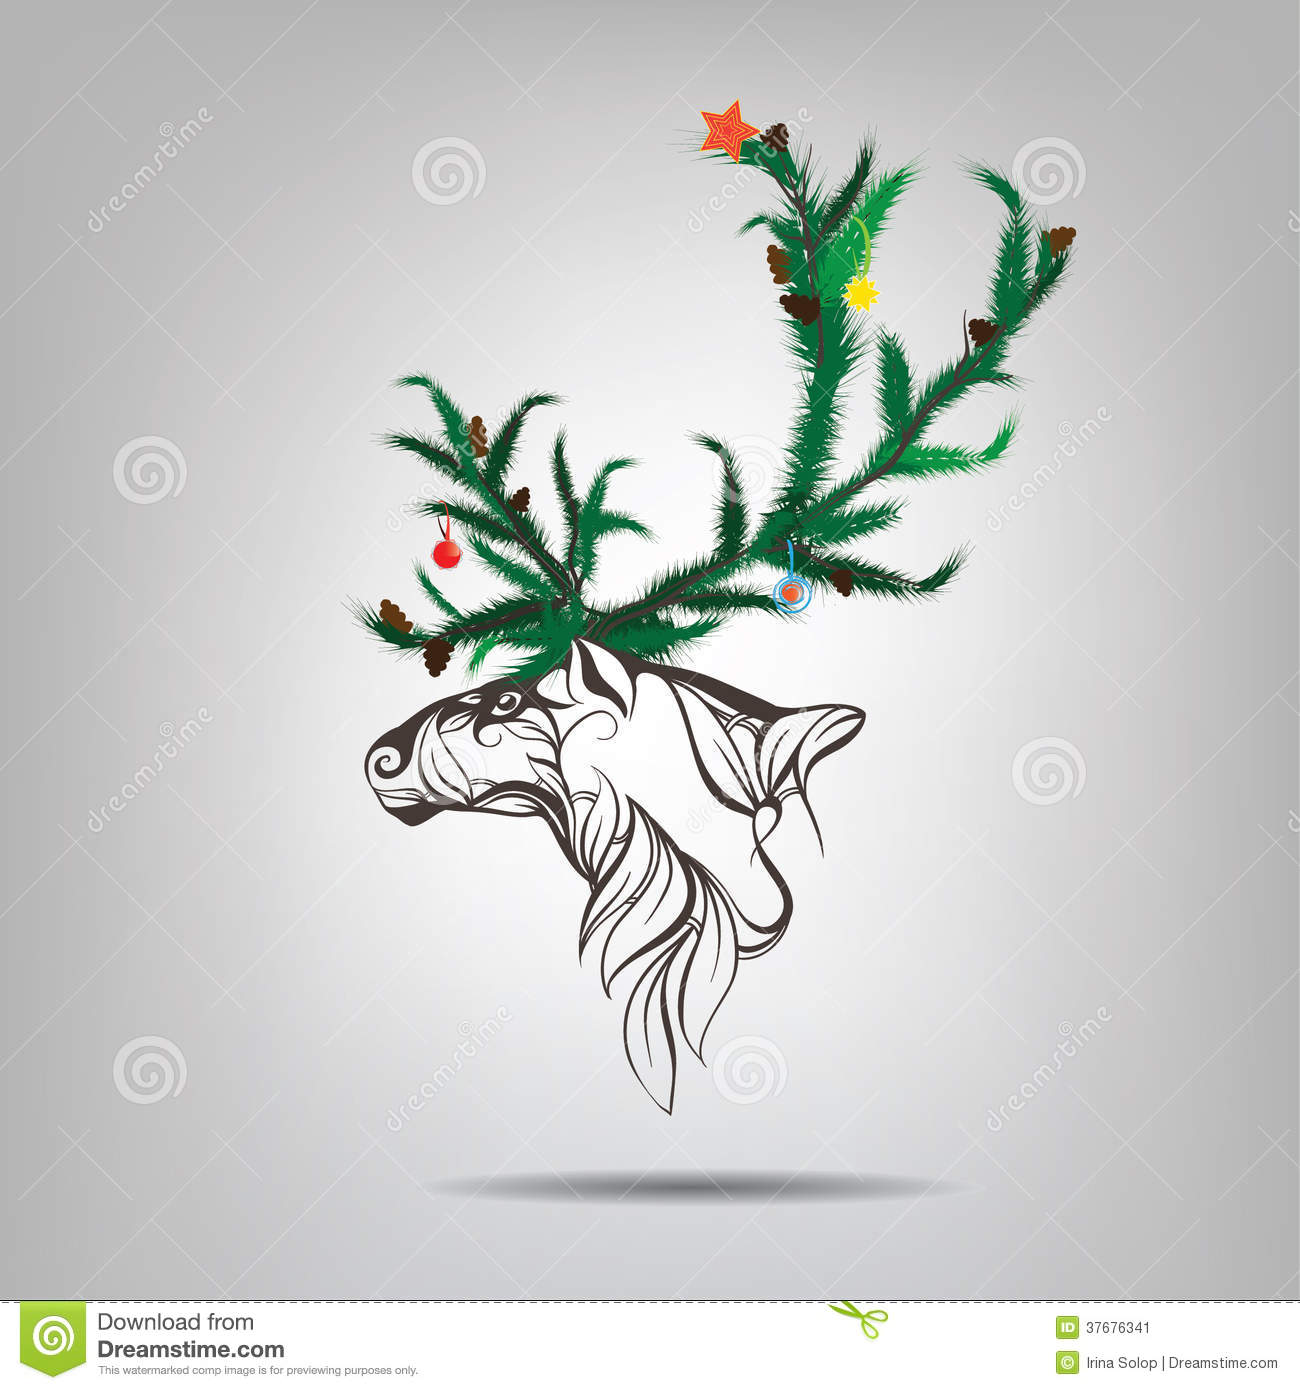 Christmas Tree Made Of Deer Antlers: Reindeer With Antlers Of A Christmas Tree. Vector